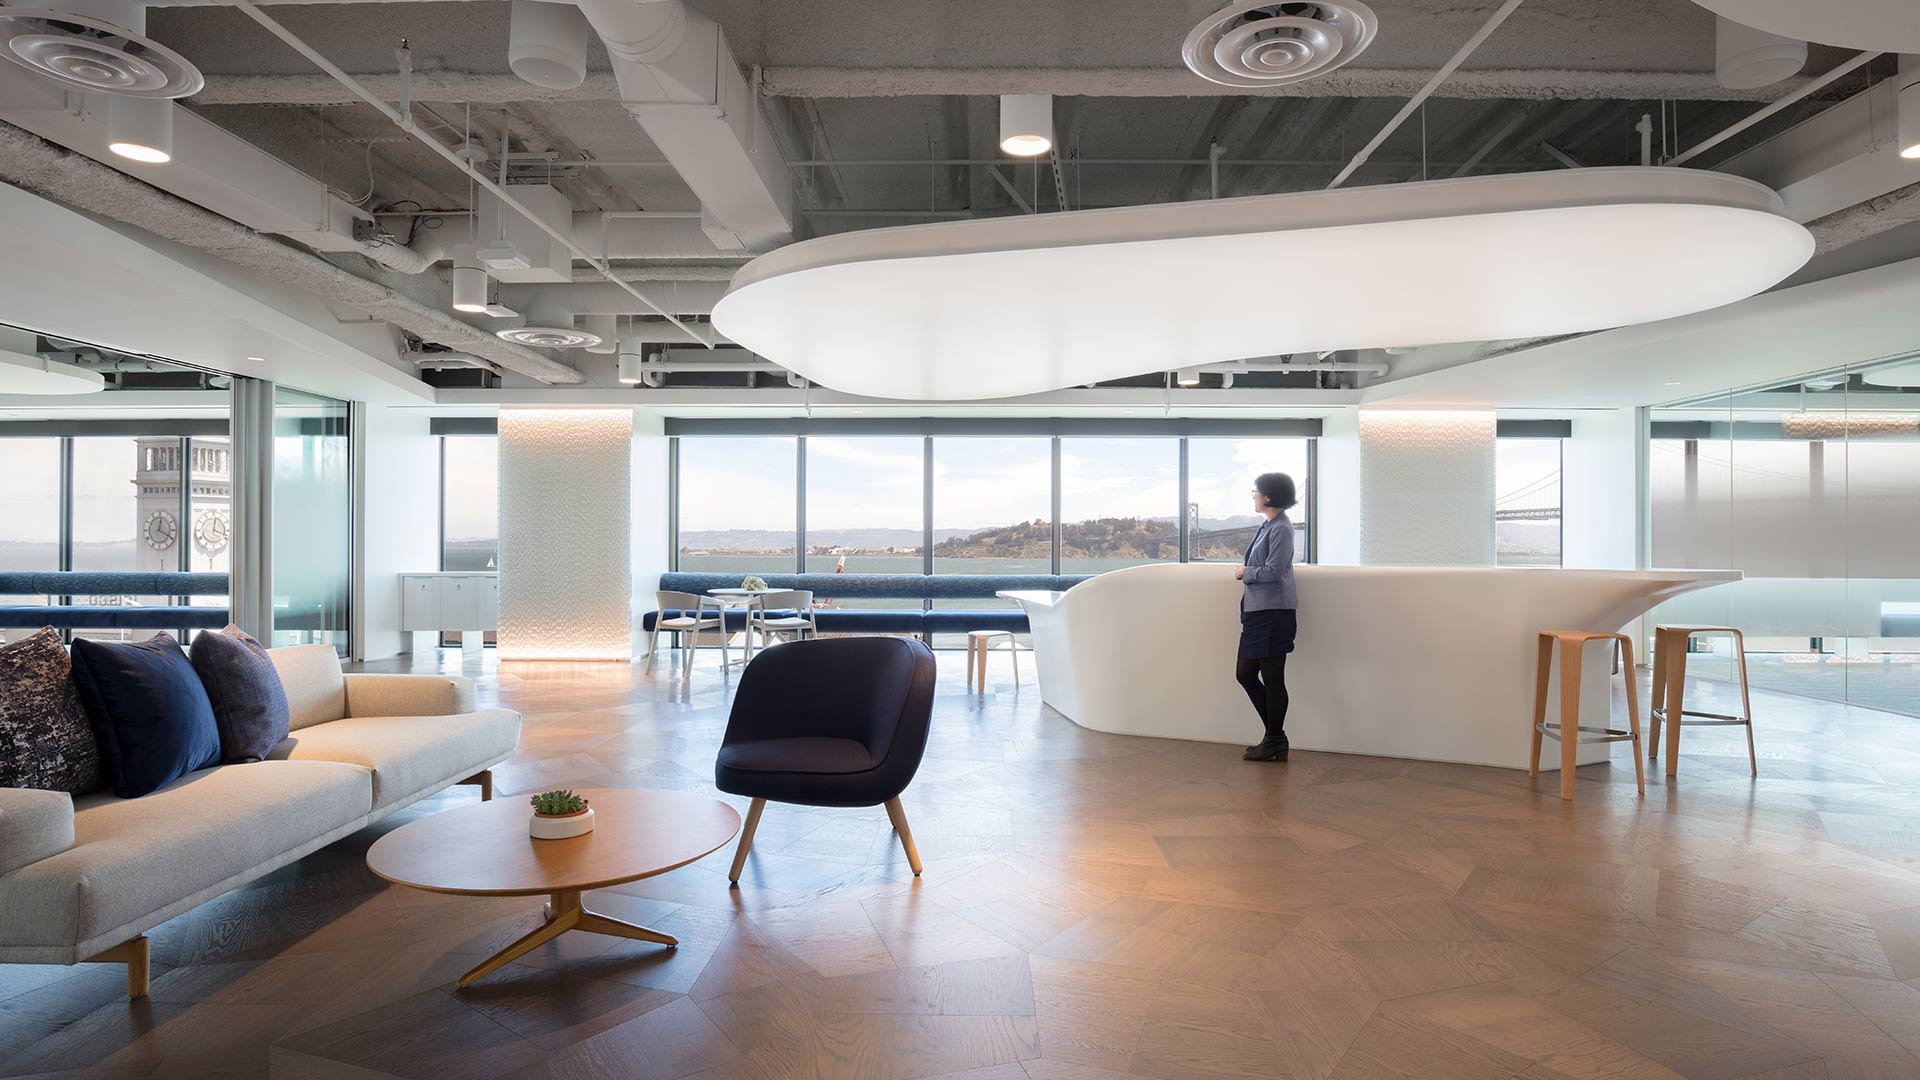 Hight-Tech headquarters - San Francisco